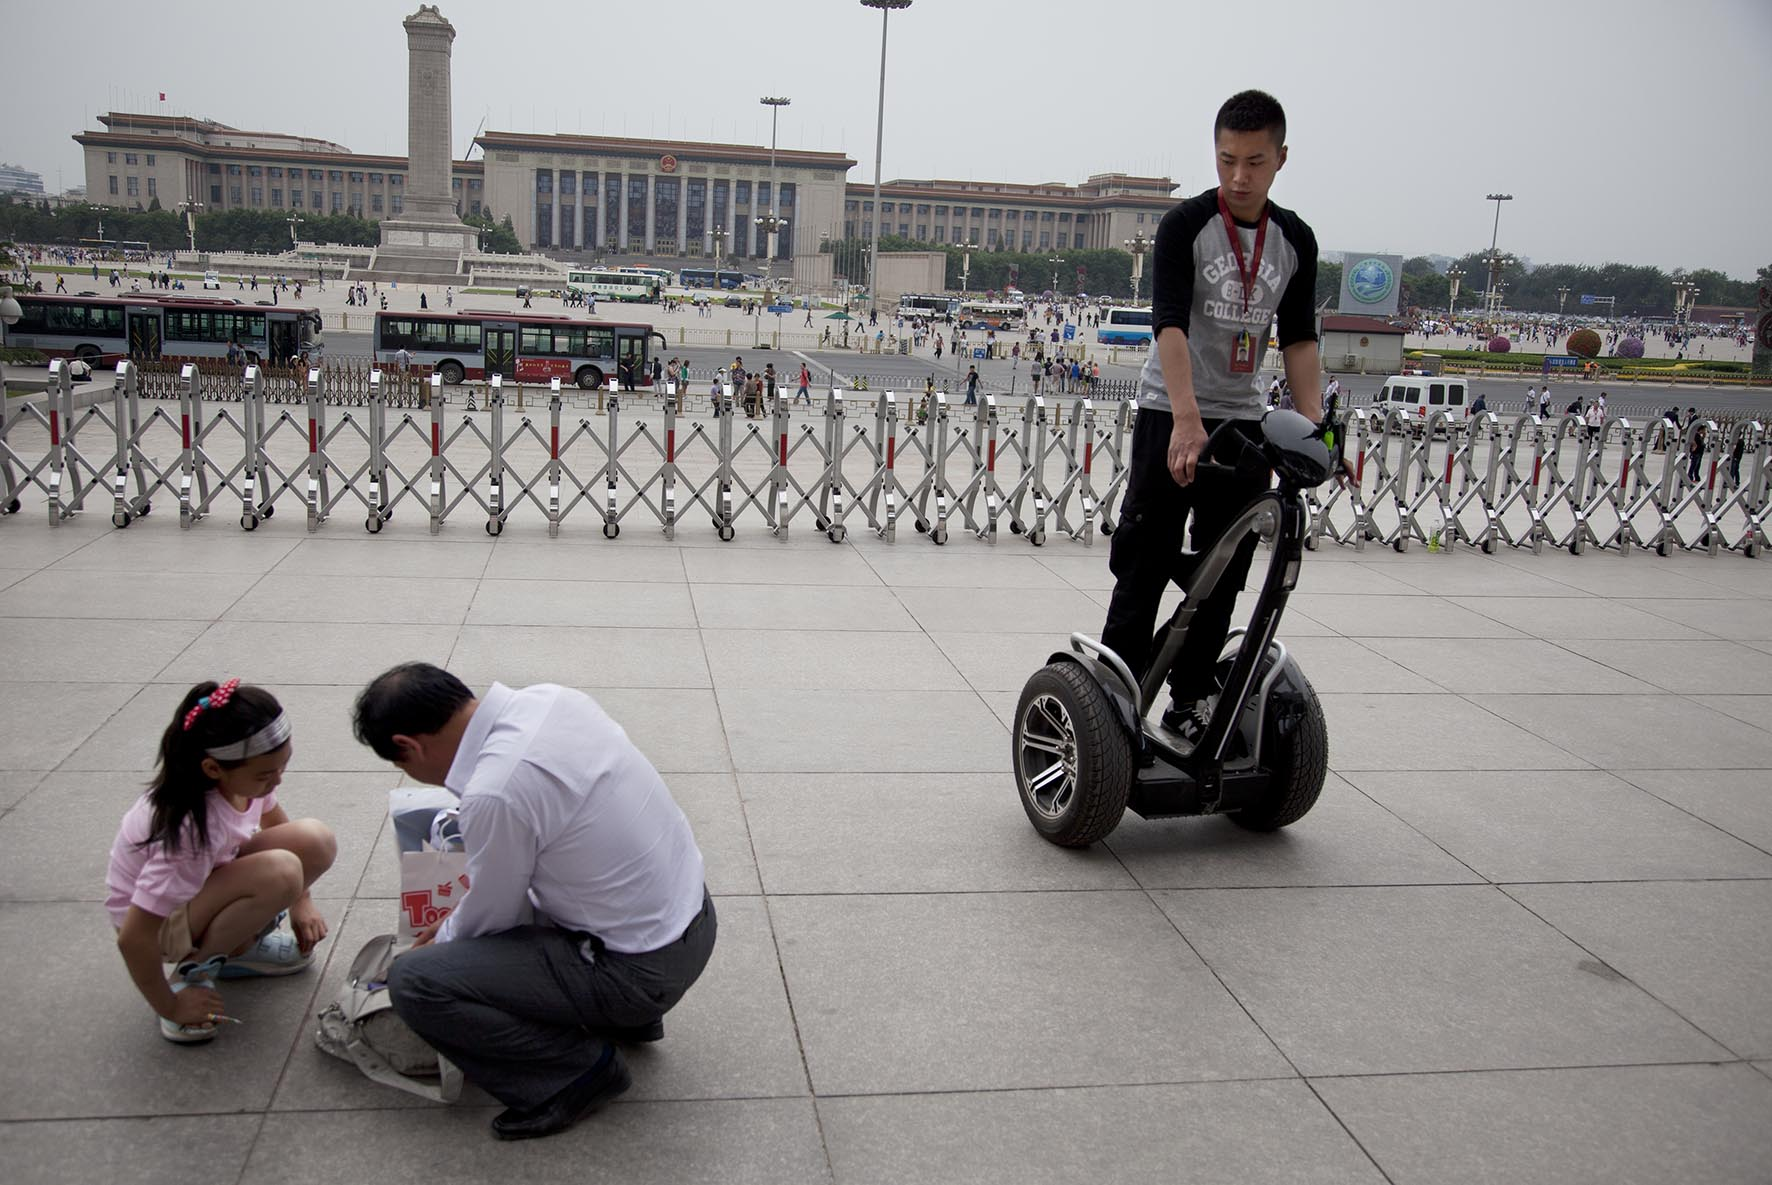 Man policing the public on a Segway two wheeled vehicle outside The National Museum of China.